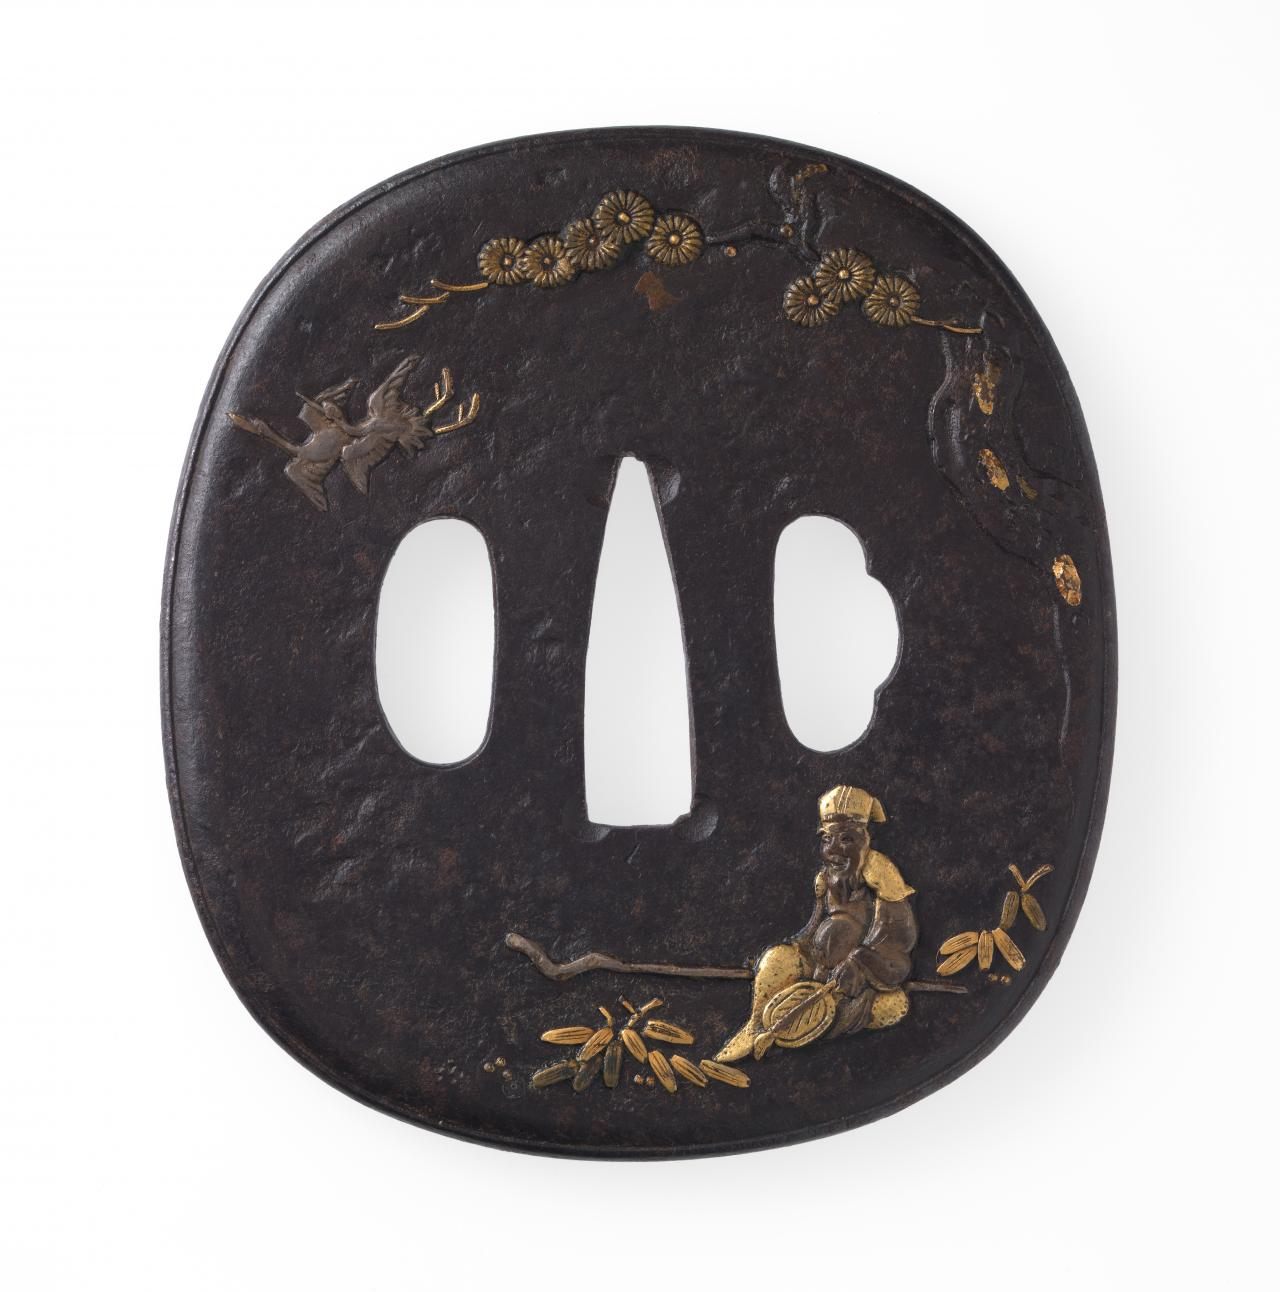 Sword guard with sitting immortal and flying cranes design